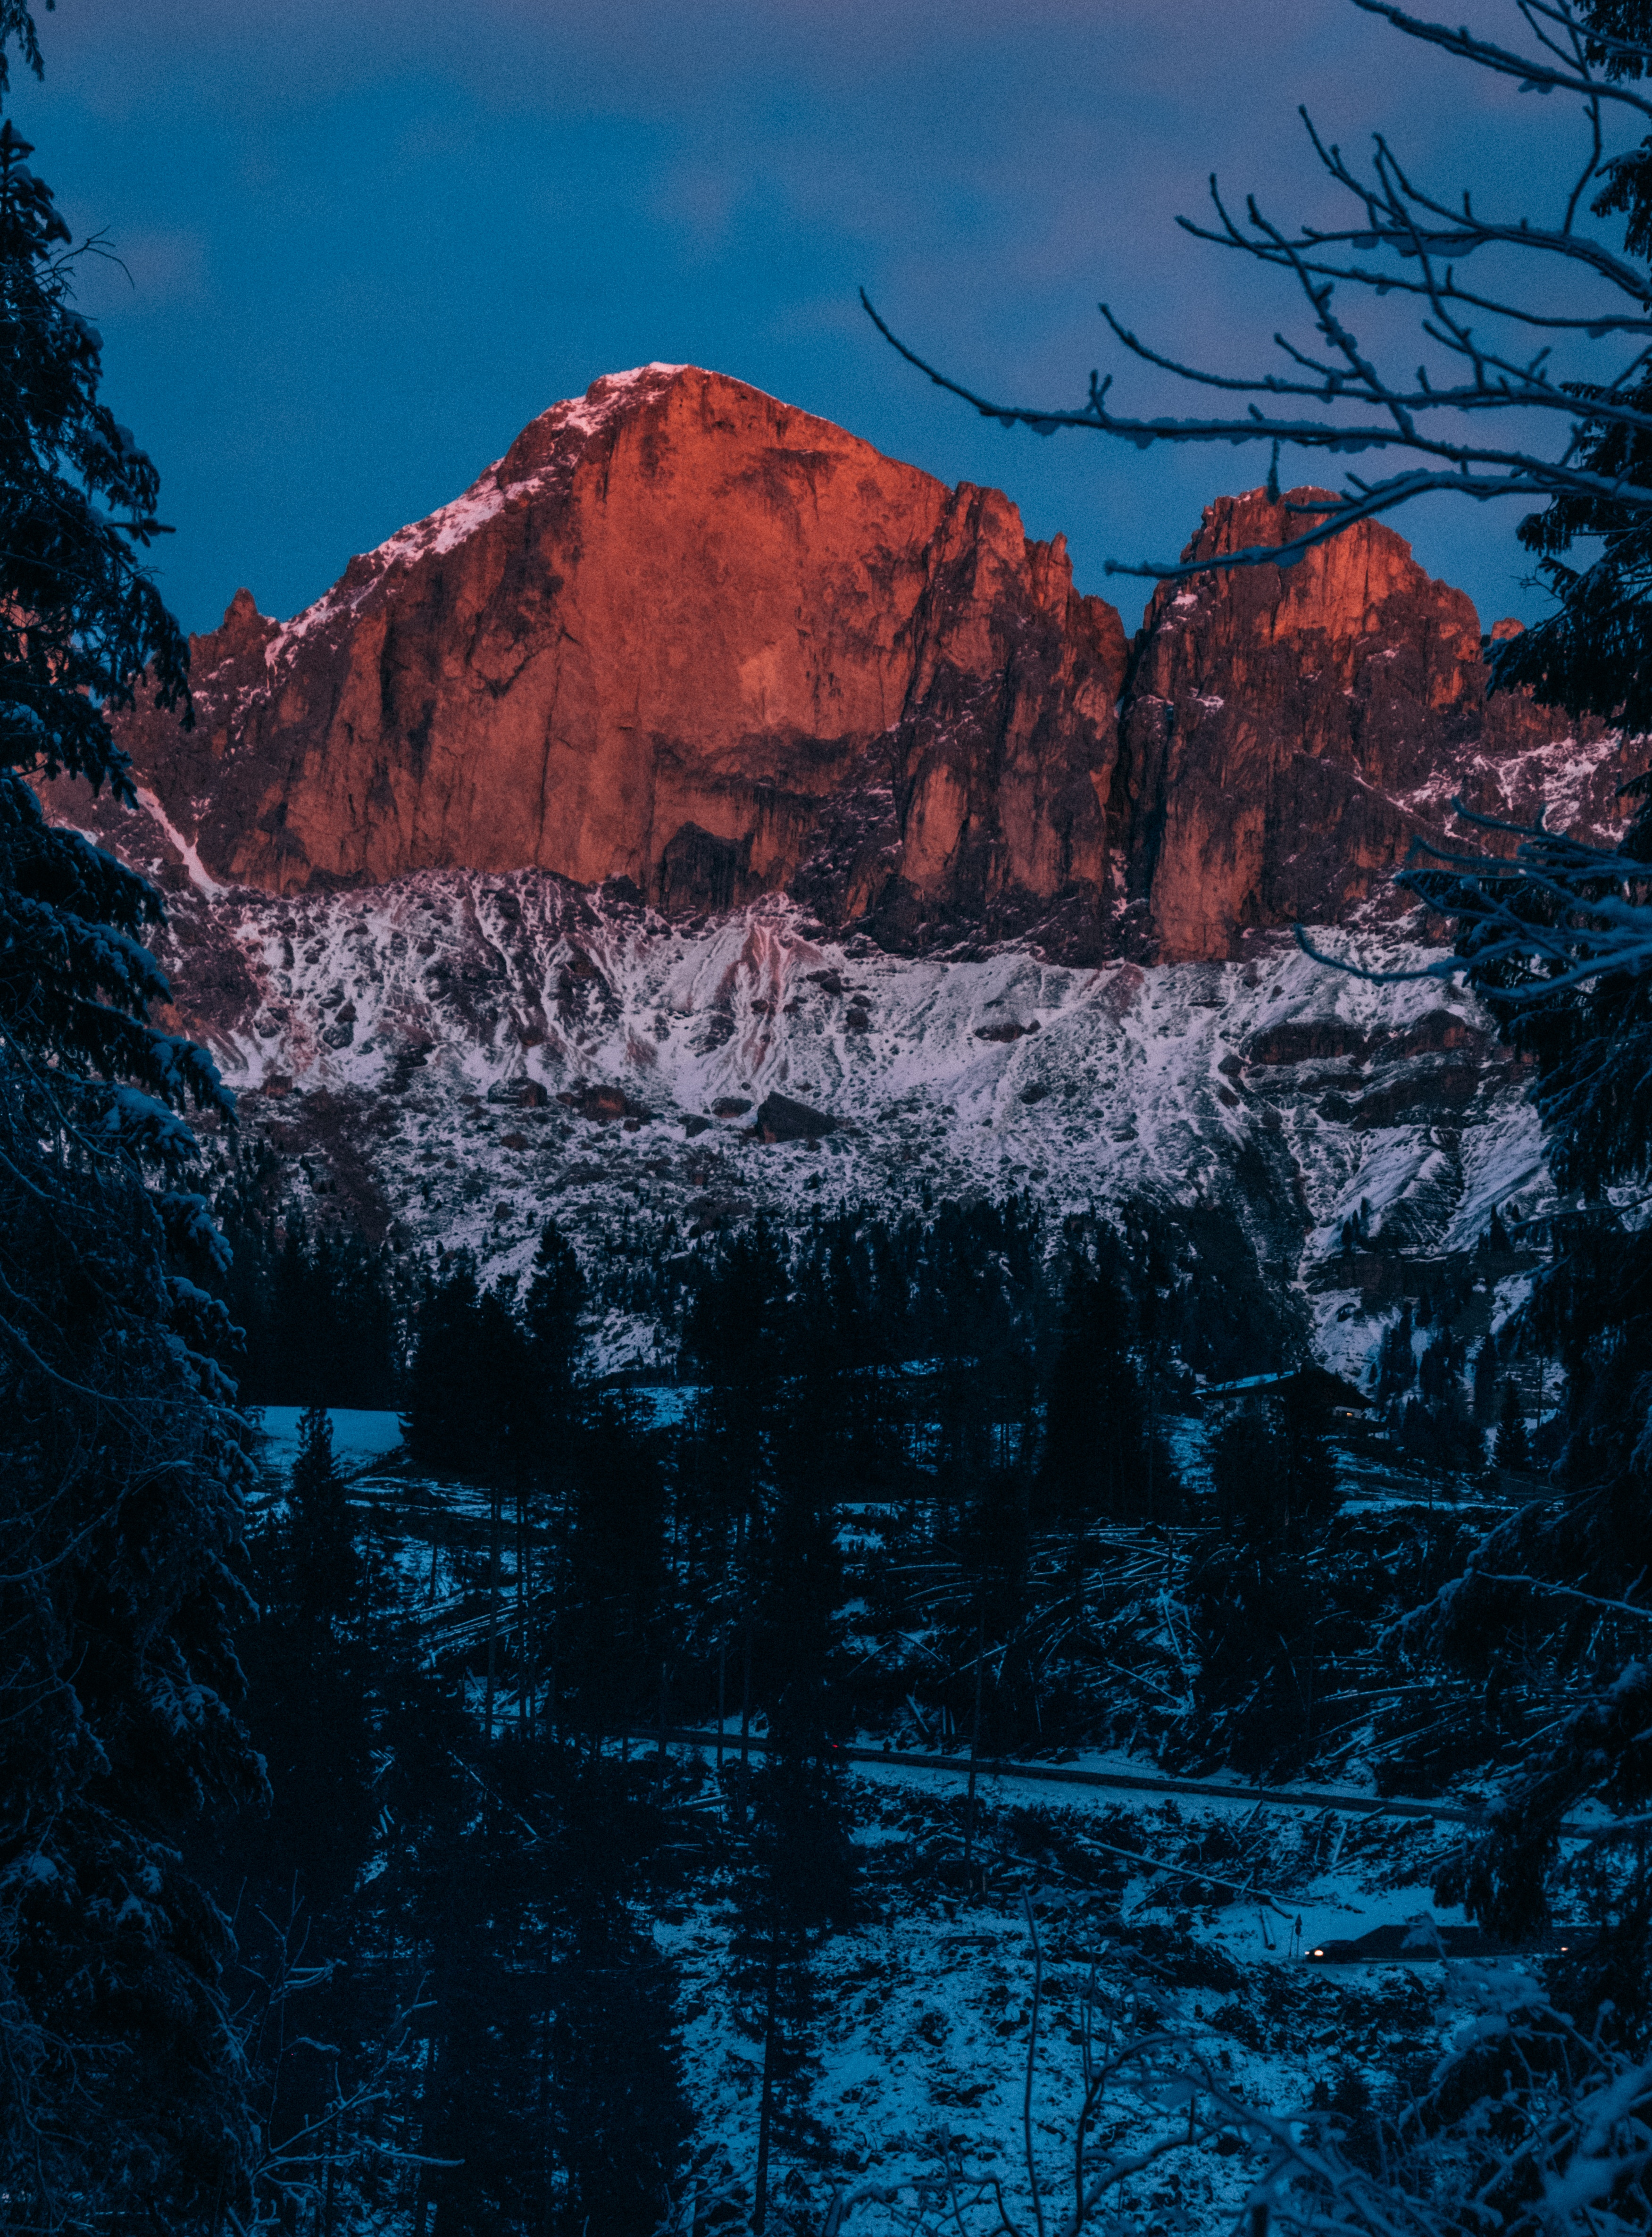 137783 download wallpaper Nature, Mountain, Winter, Branches, Snow, Dusk, Twilight screensavers and pictures for free